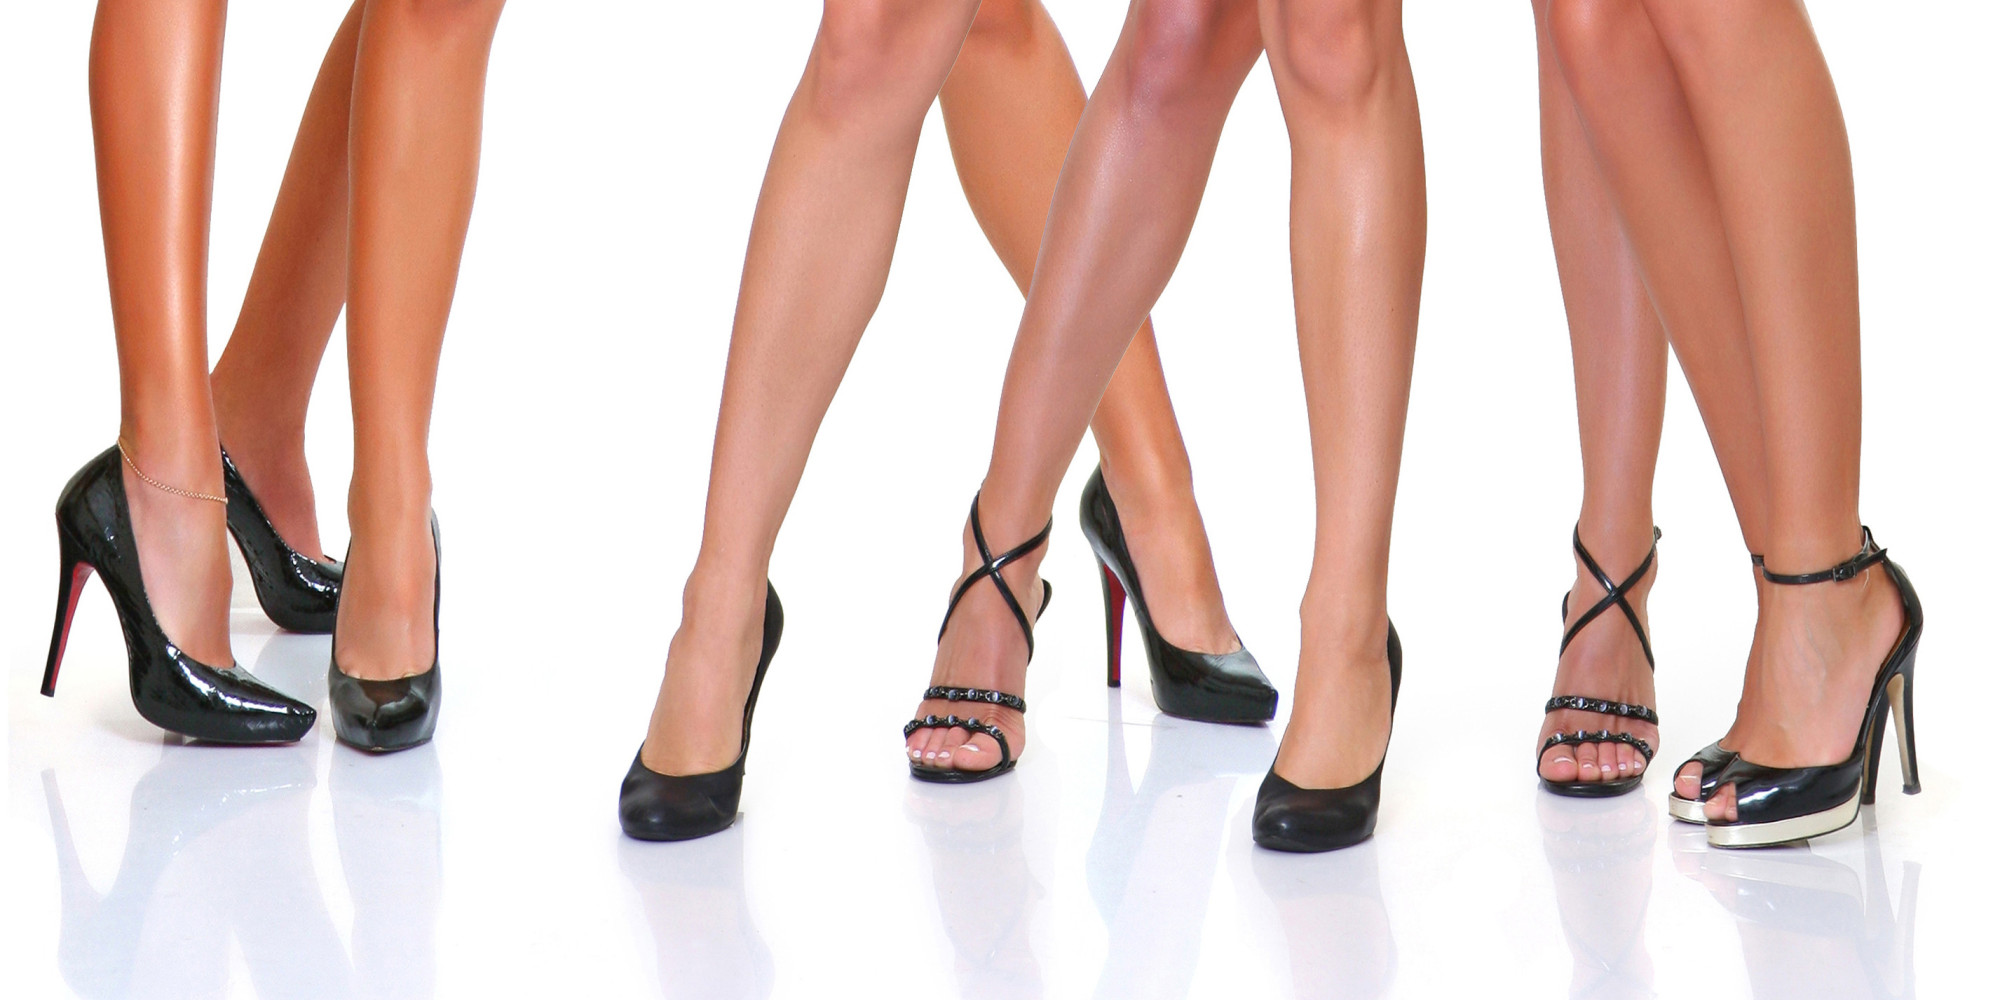 The Number Of Injuries Caused By High Heels Is On The Rise ...